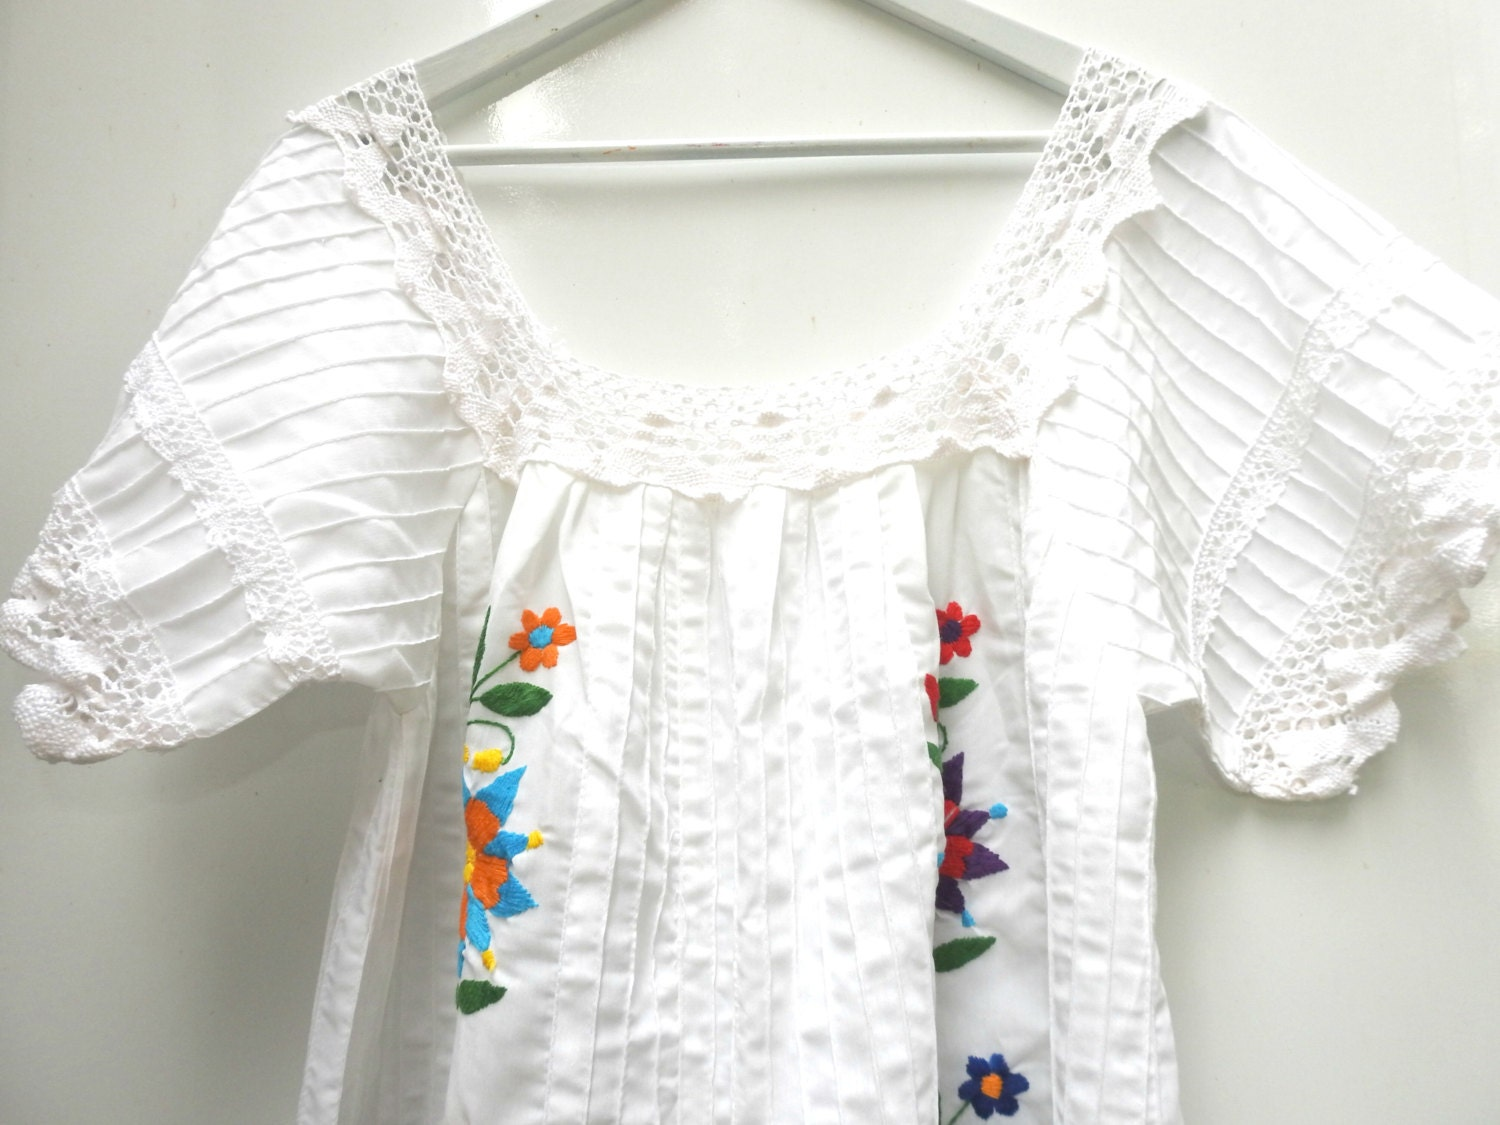 ... White embroidered mexican dress | Mexican dresses for women | Boho.  gallery photo gallery photo ...